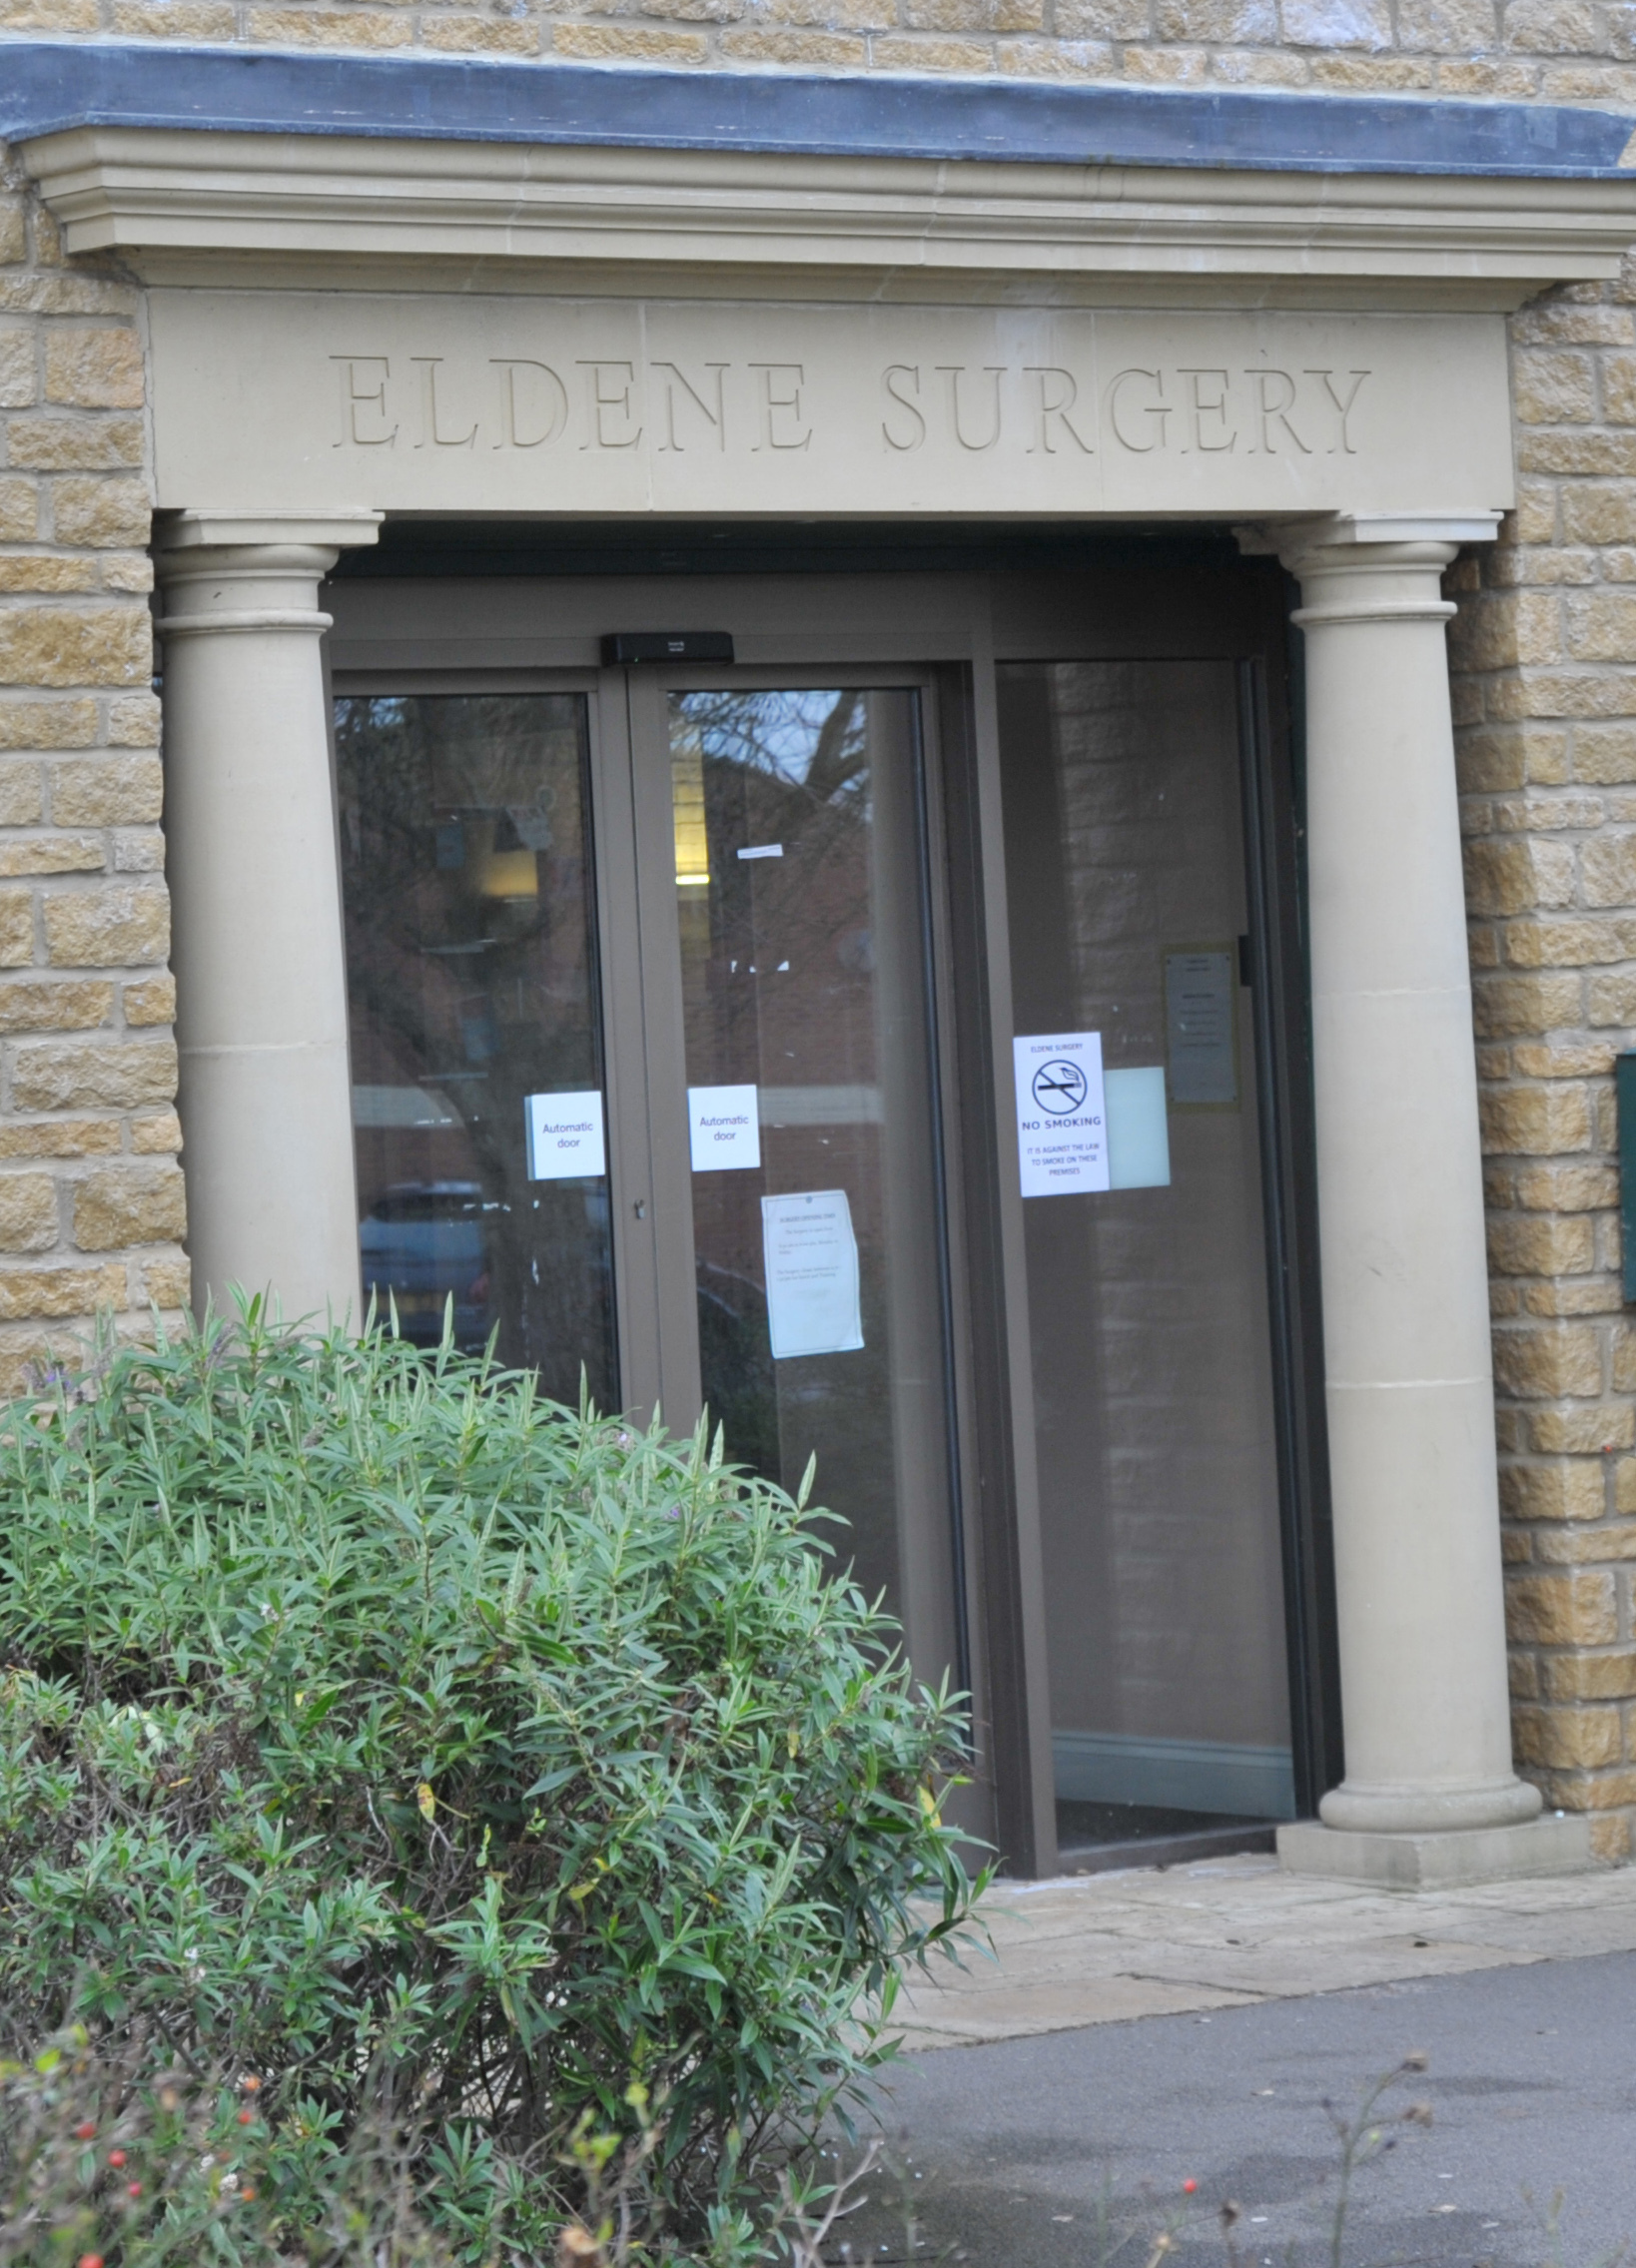 Eldene Surgery patients invited to meet new provider after IMH fiasco